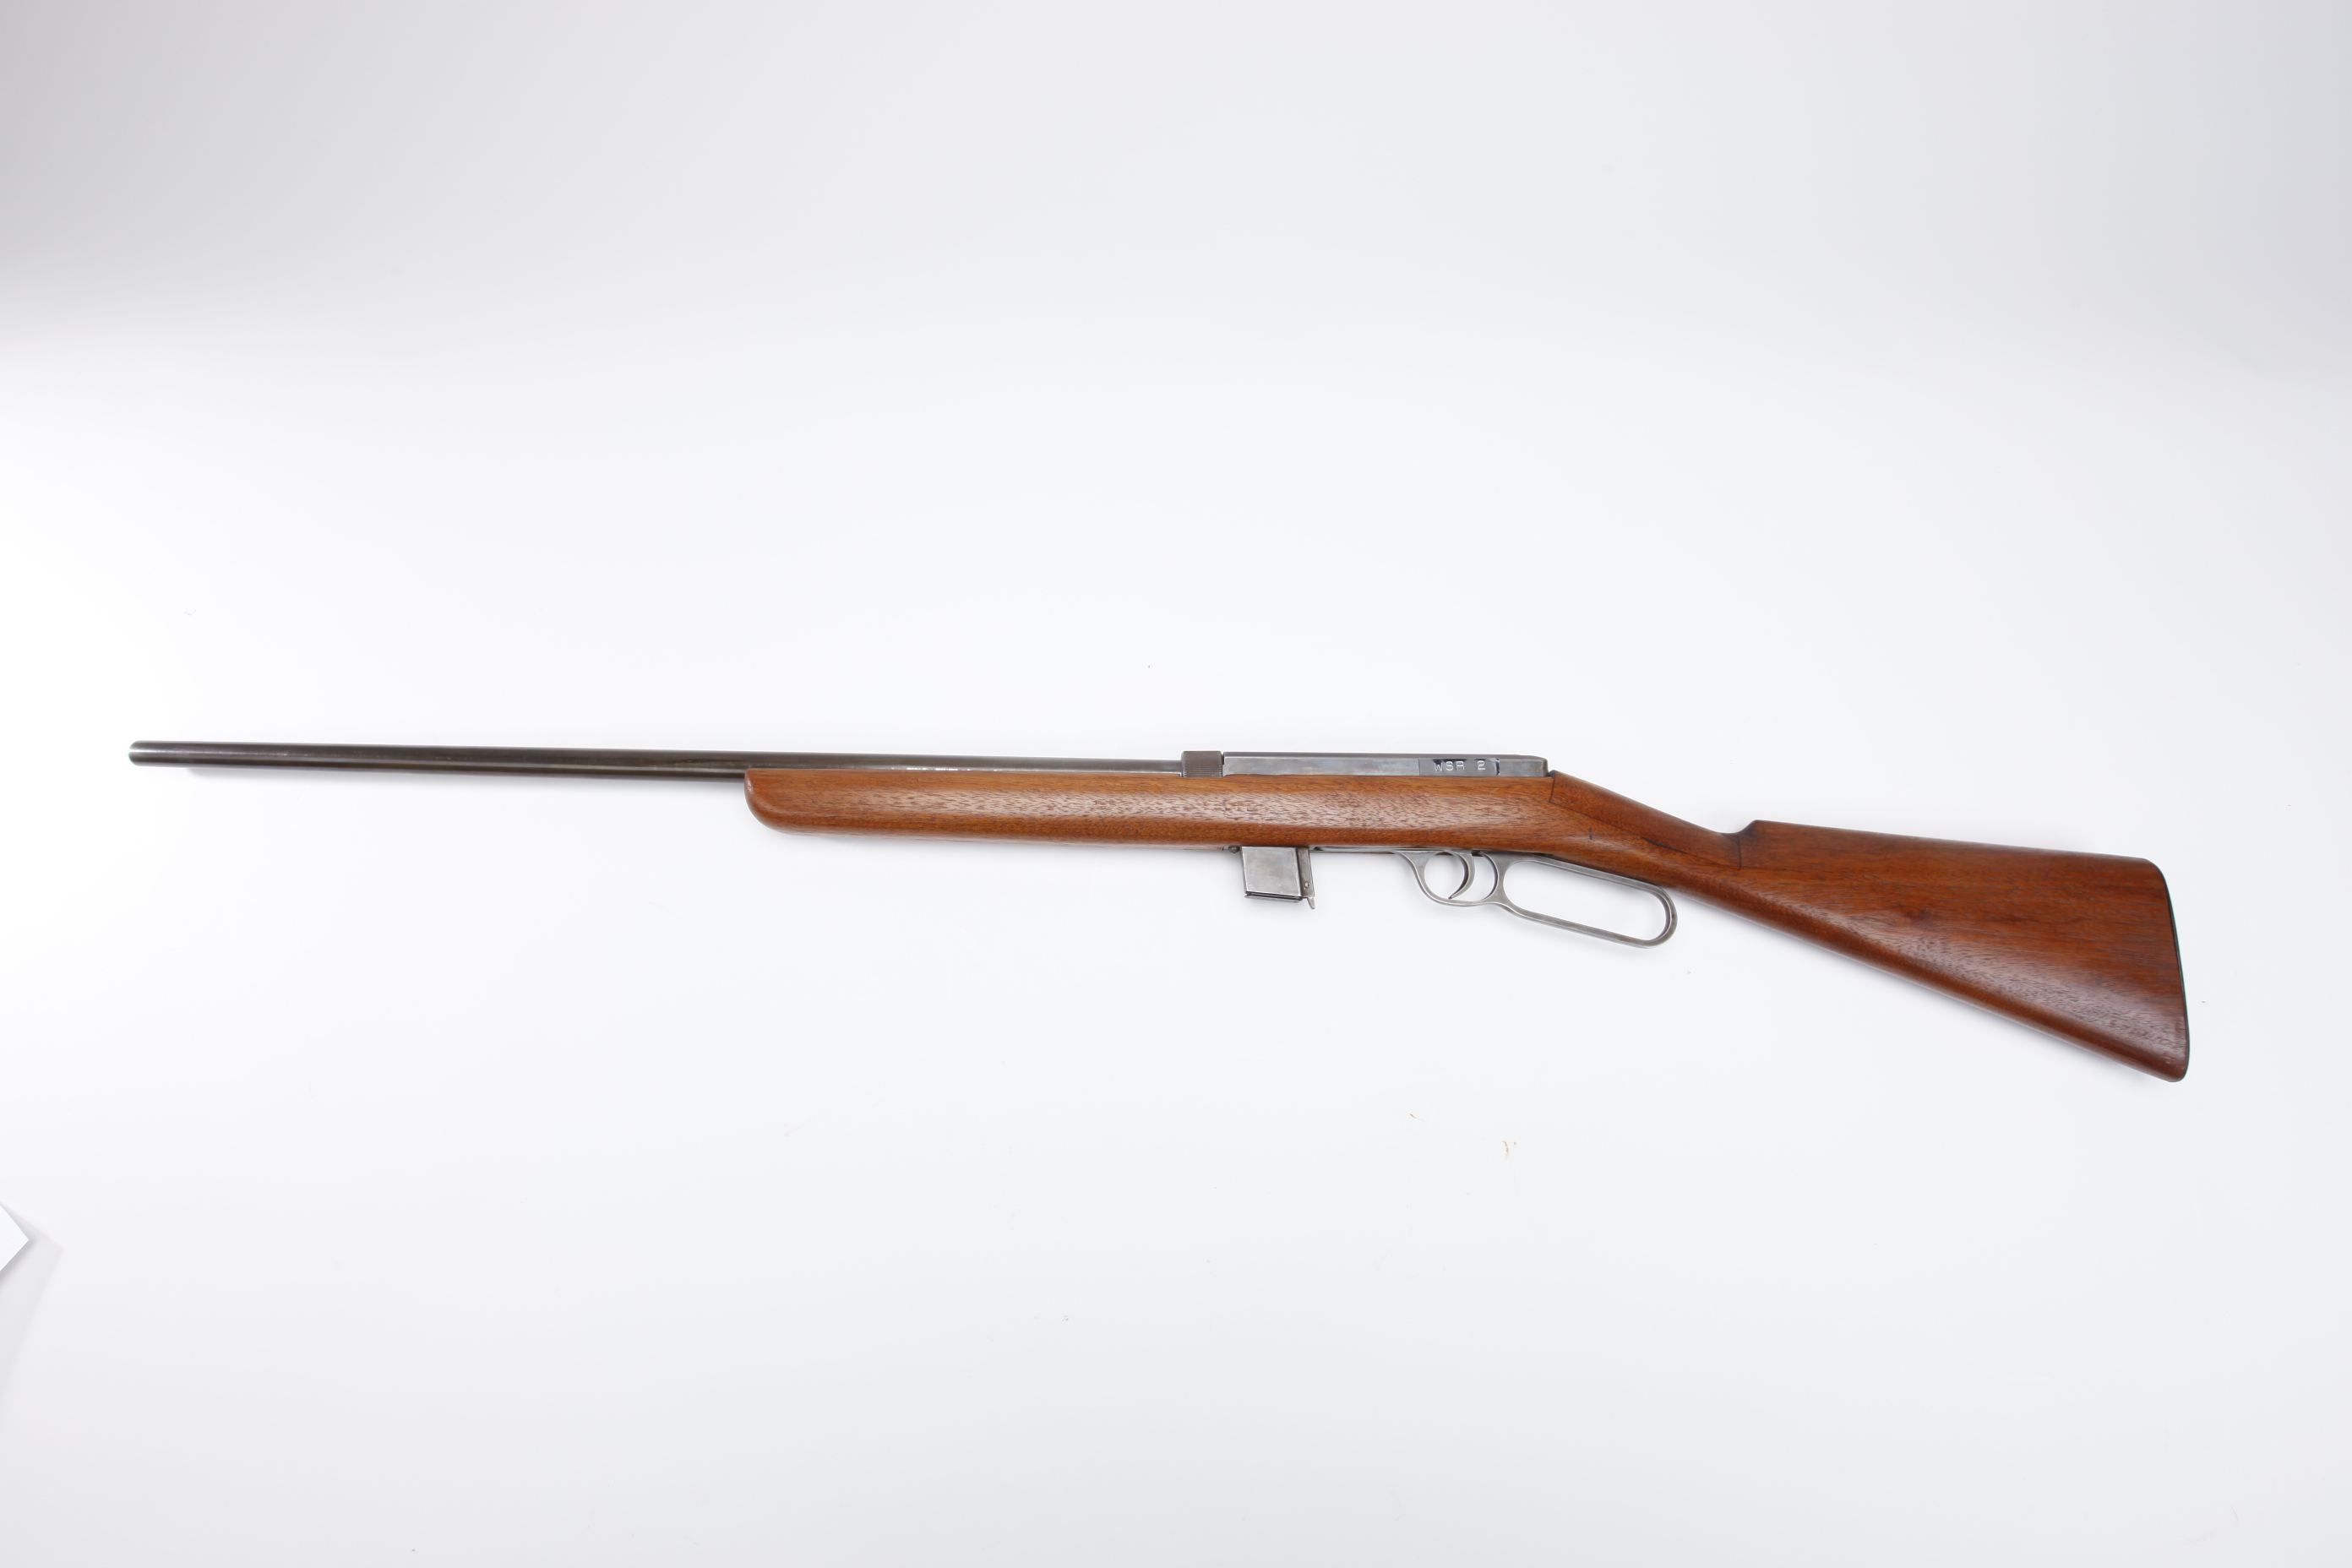 Winchester Model 1873 Rifle with Shotgun Conversion